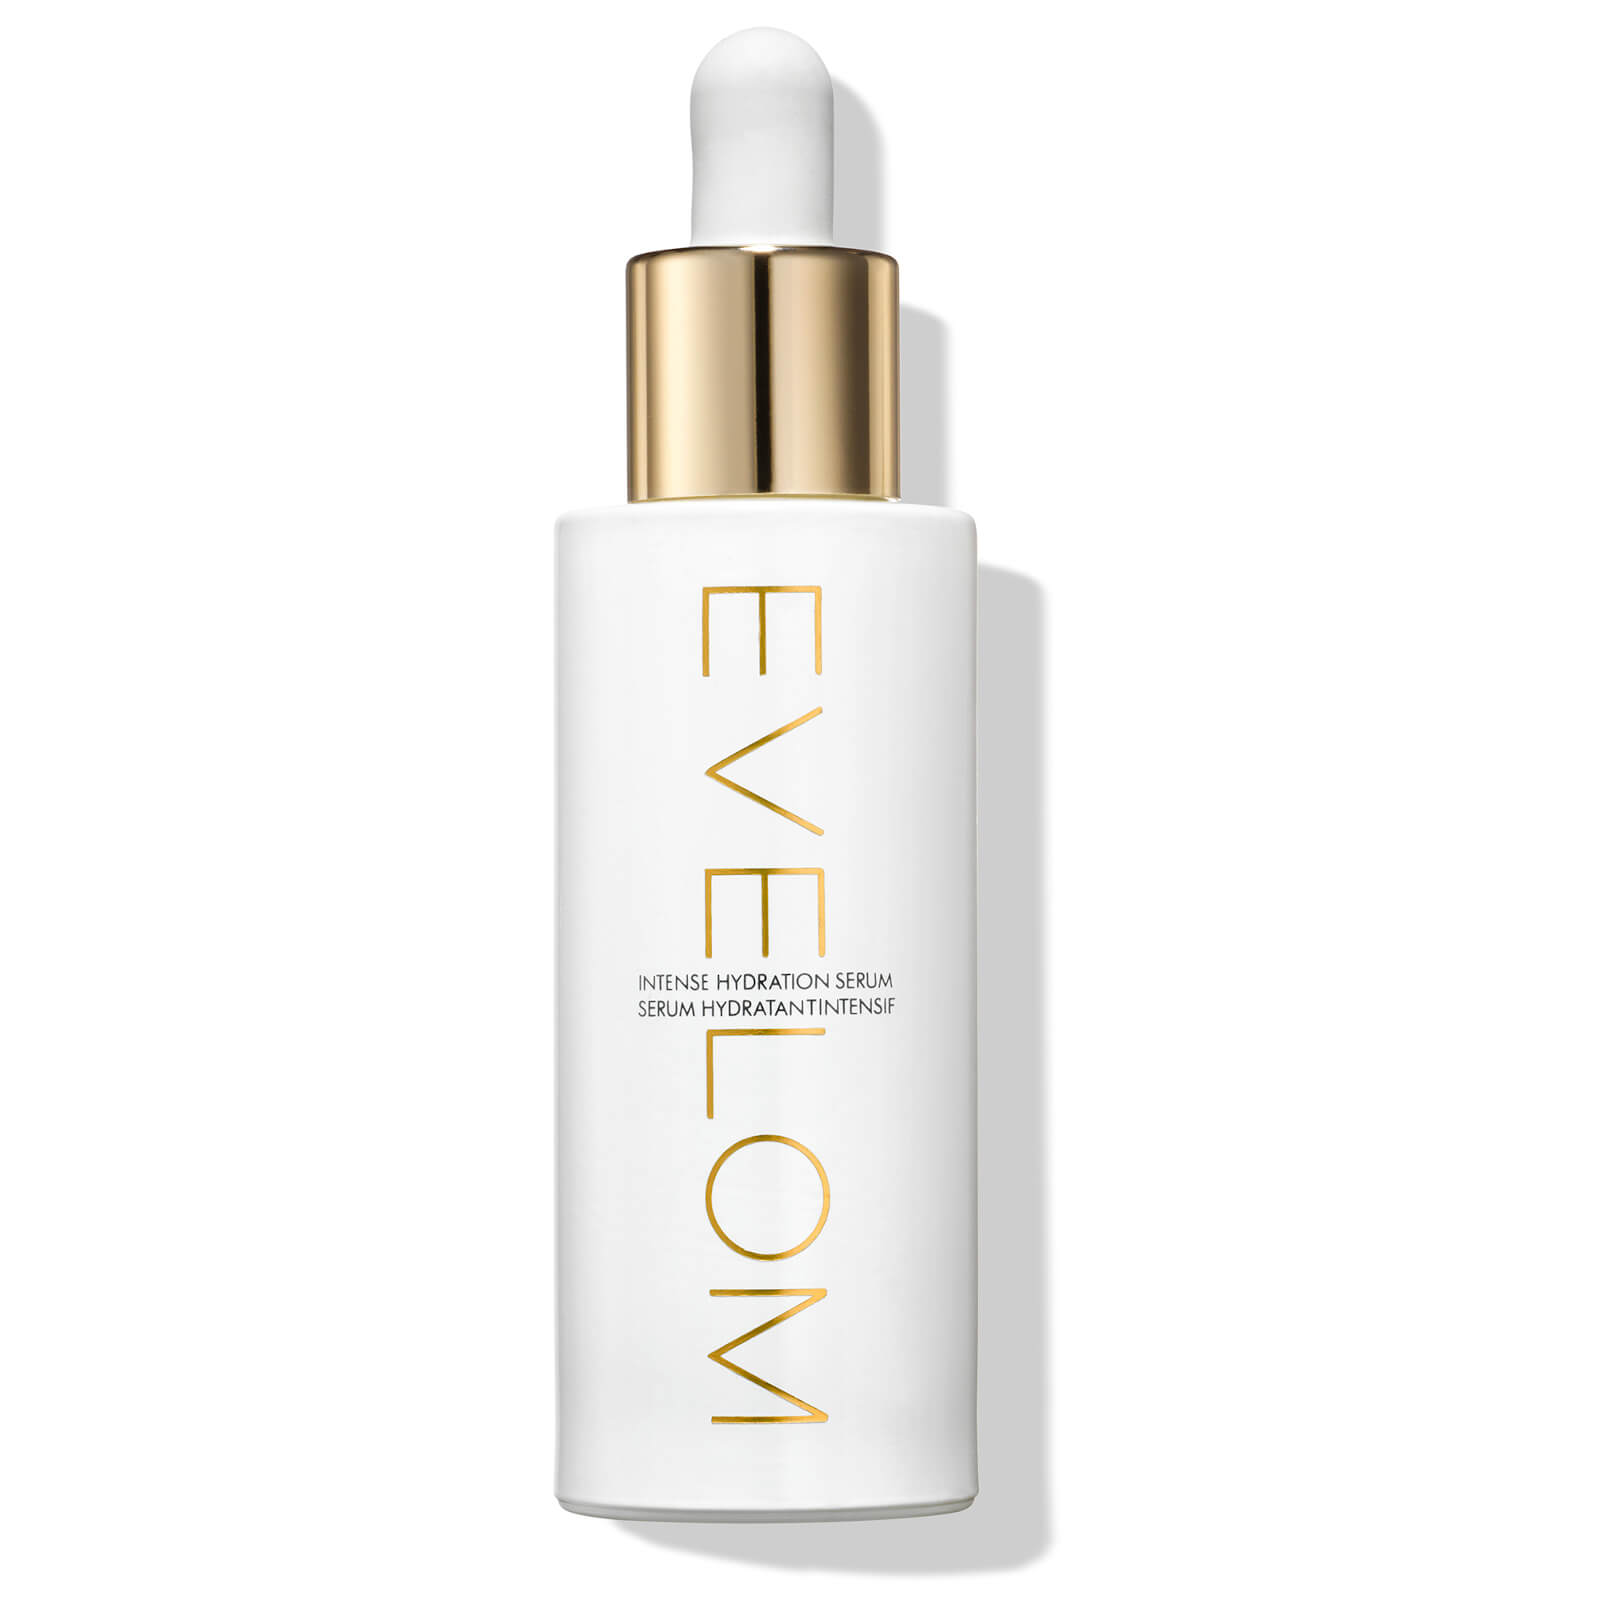 Eve Lom Intense Hydration Serum 1oz